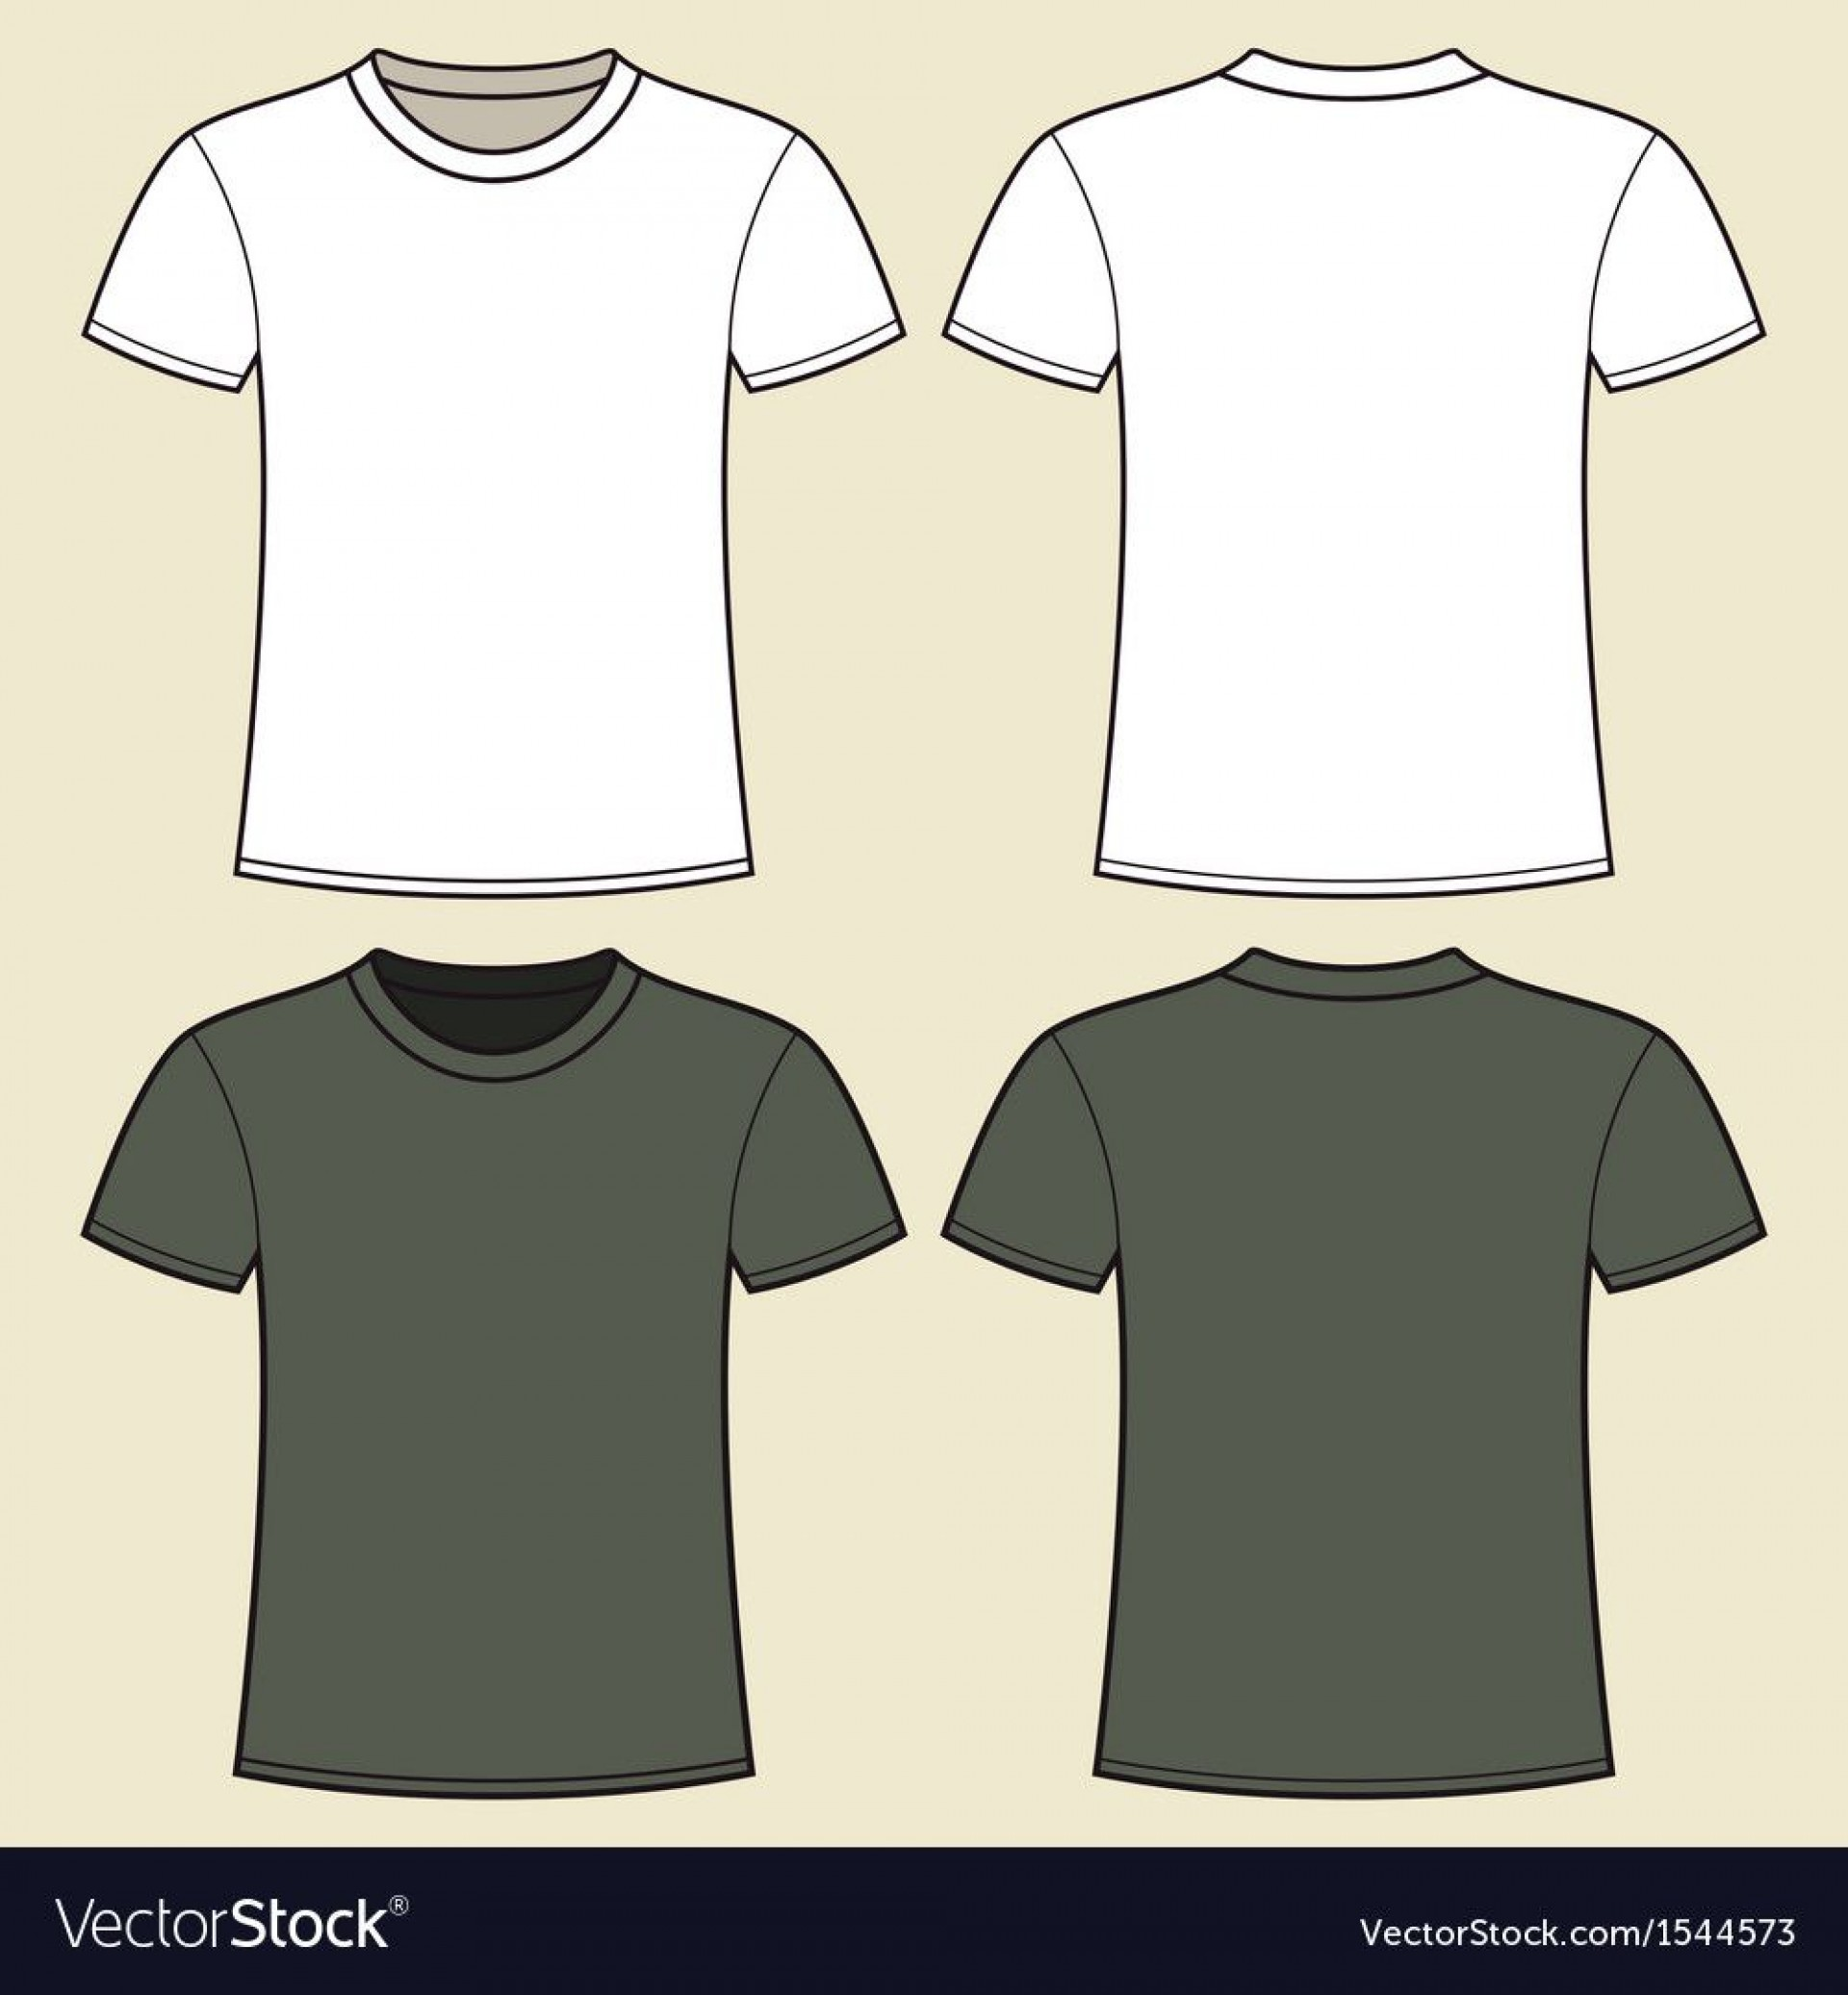 004 Stunning T Shirt Design Template Free Picture  Psd Download1920